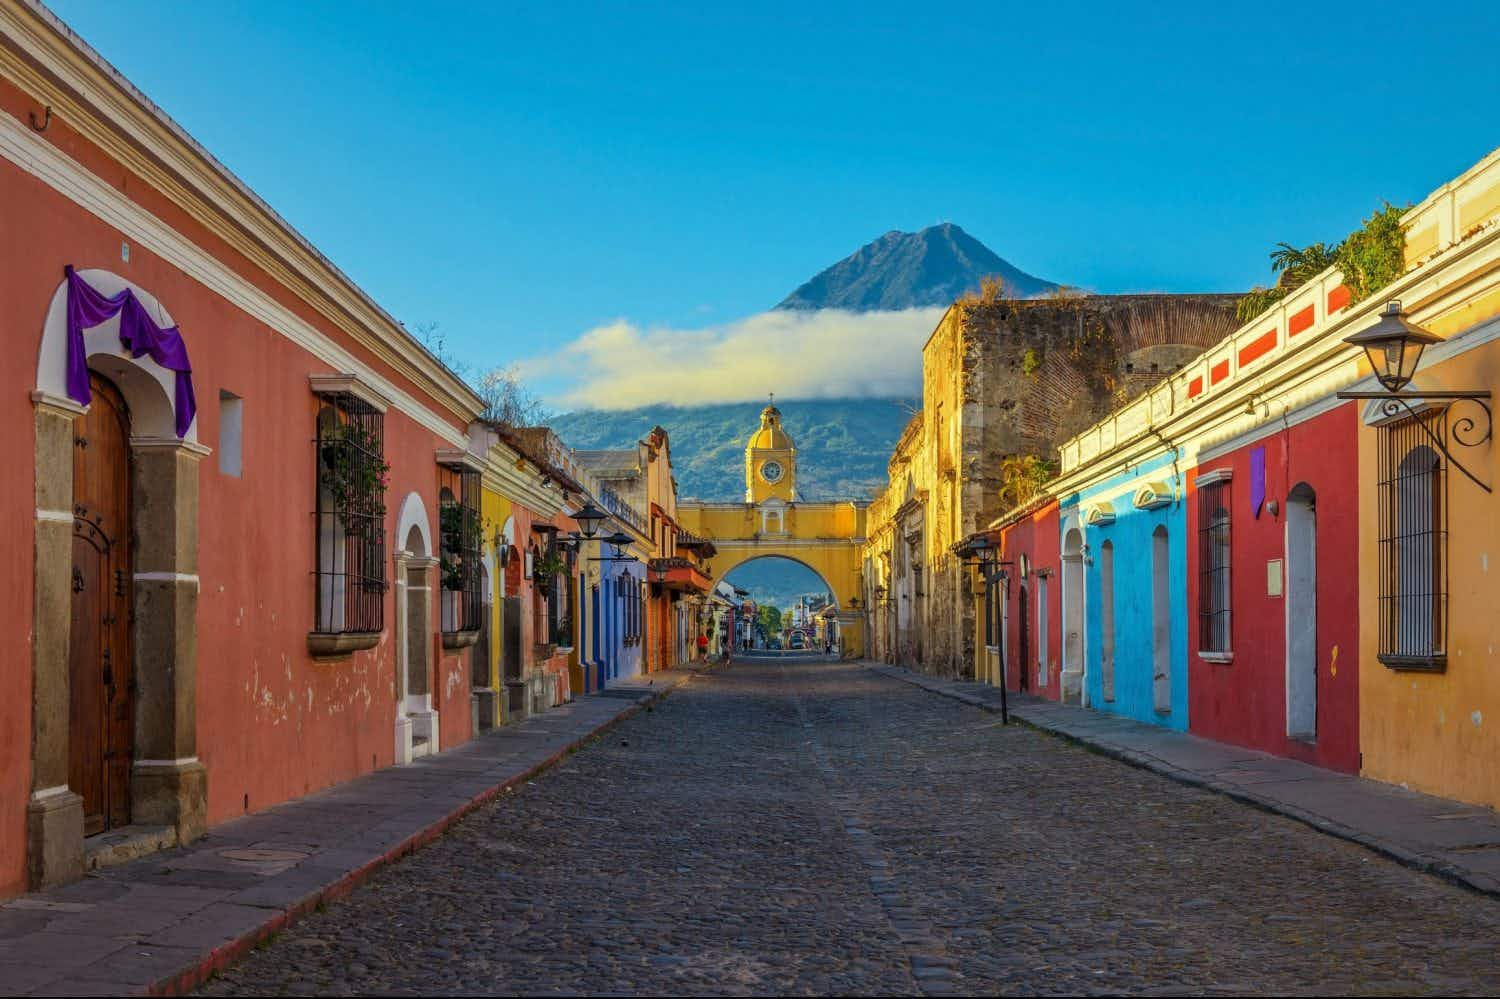 Score discounts on Caribbean travel by answering trivia questions